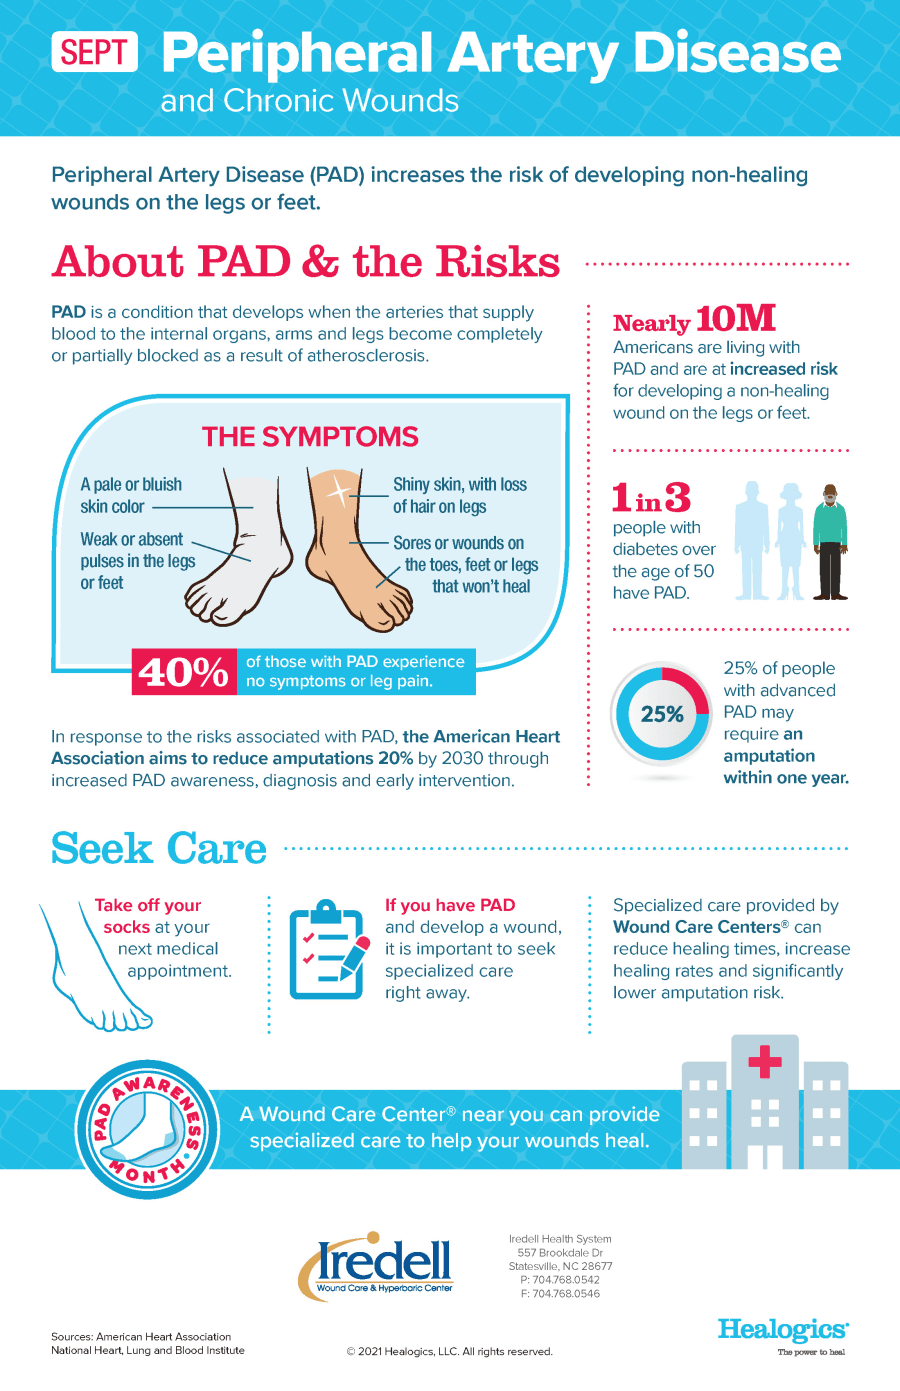 Peripheral Artery Disease (PAD) increases the risk of developing non-healing wounds on the legs or feet.